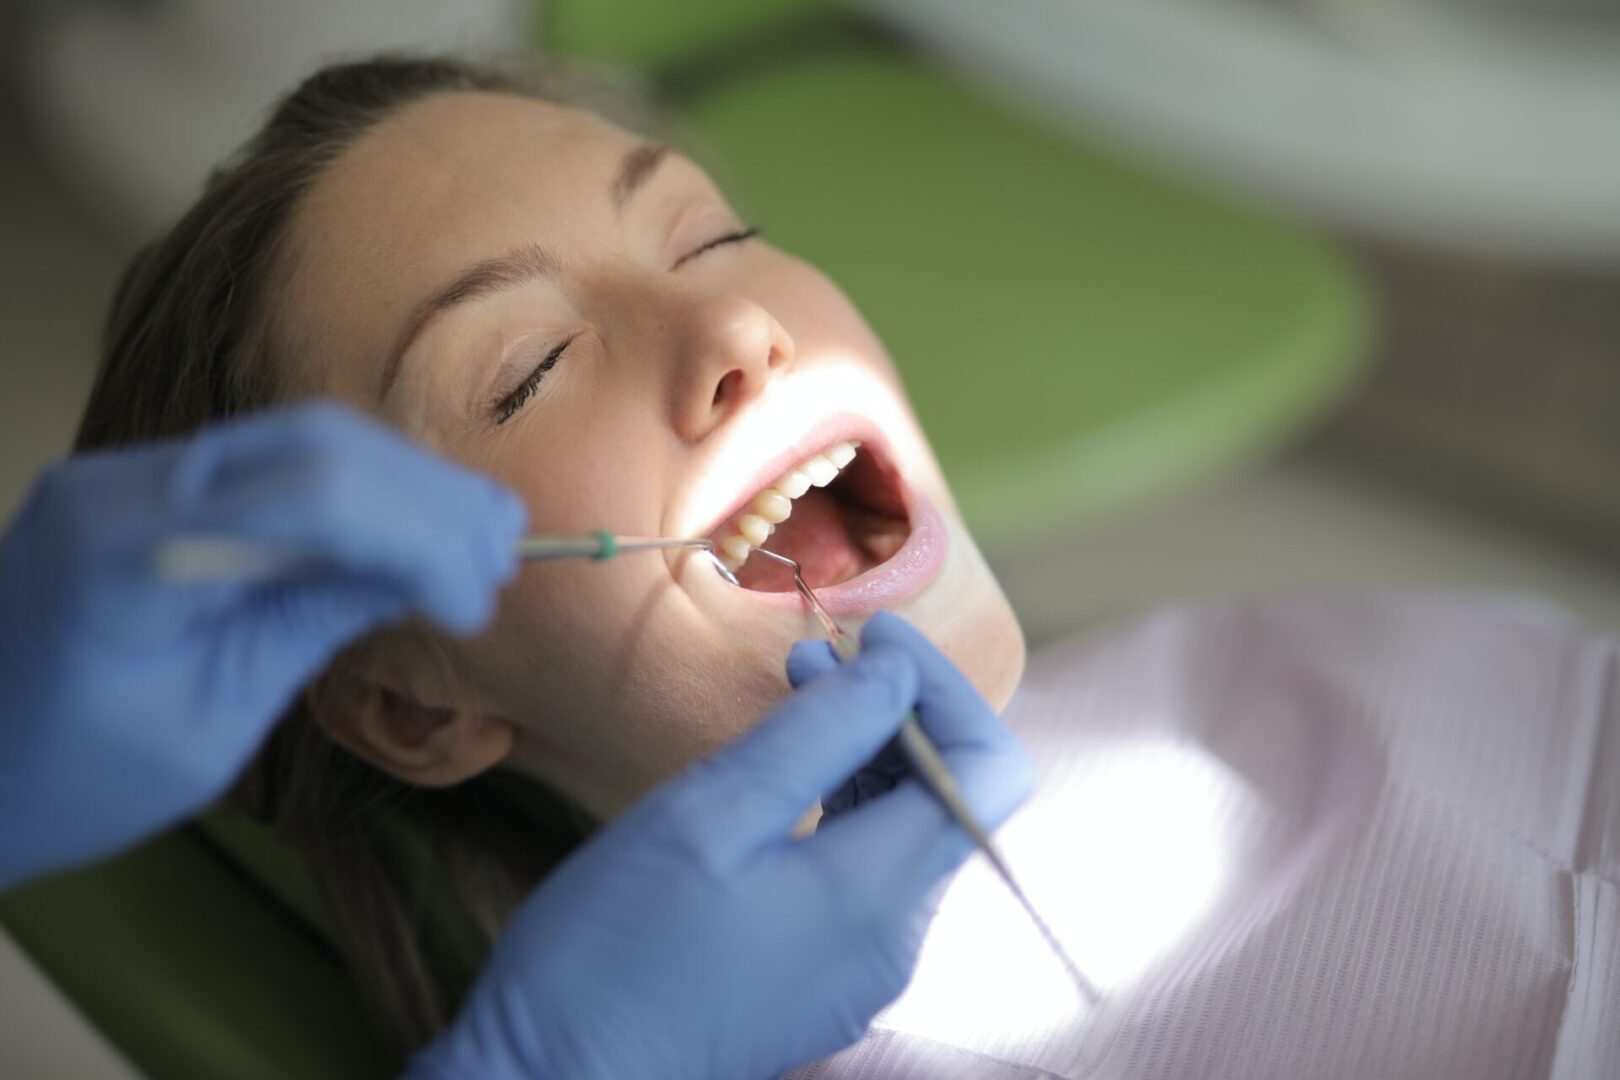 dentist-appontment-3881449